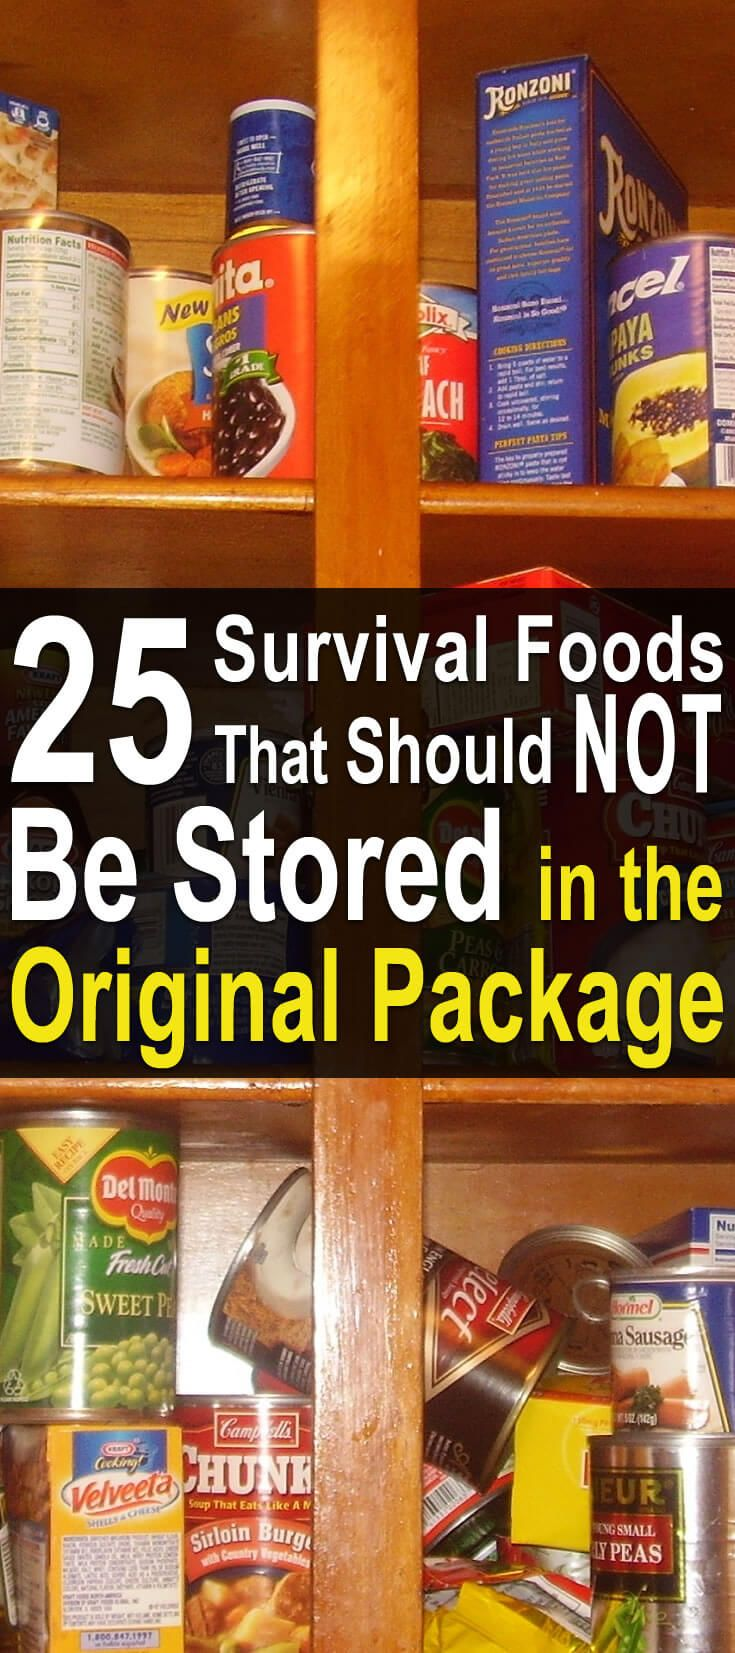 25 Survival Foods That Should NOT Be Stored in the Original Package